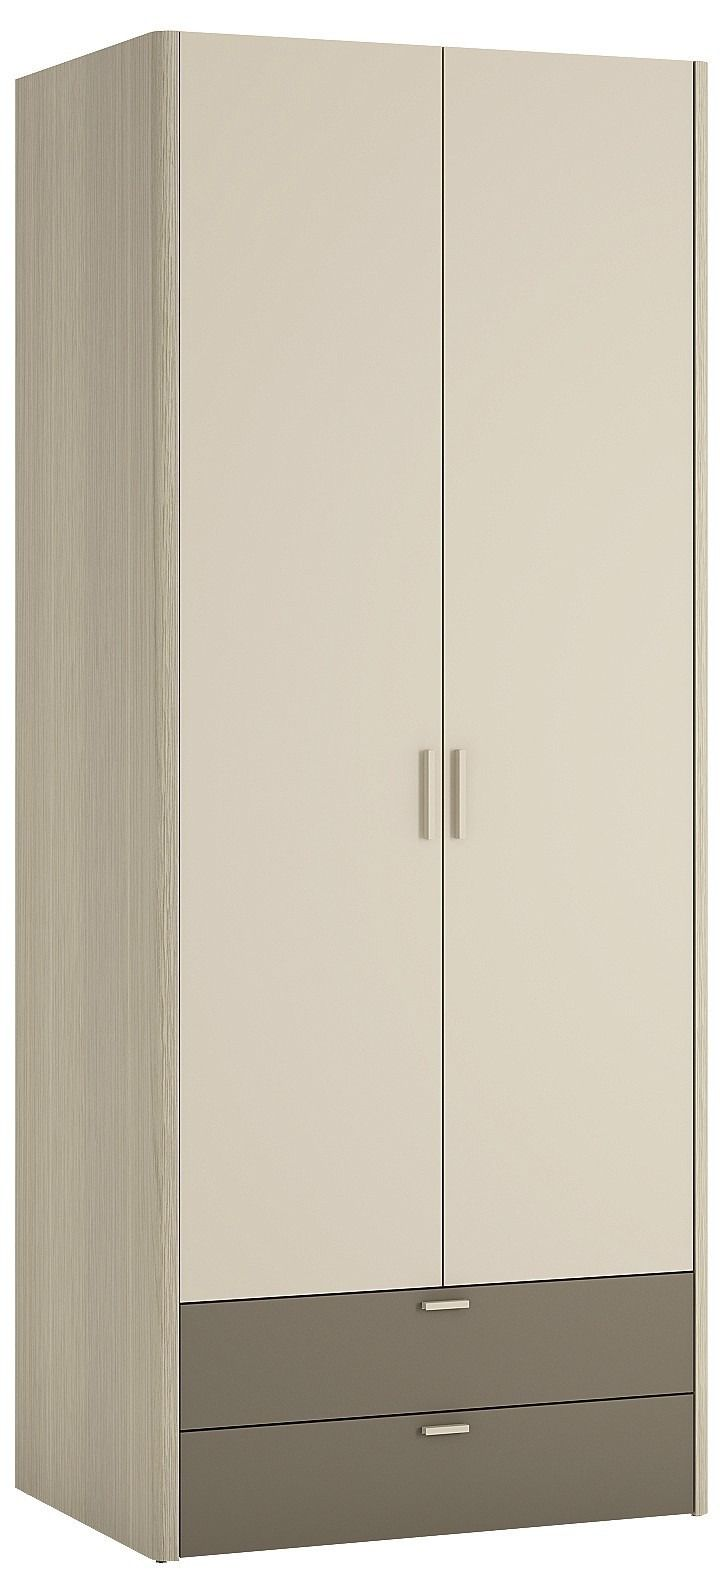 Holiday 2 Door 2 Drawer Fitted Wardrobe In Oak Plover Cream Melamine Offers A Great Ra Wardrobe Interior Design Wardrobe Furniture Fitted Bedroom Furniture